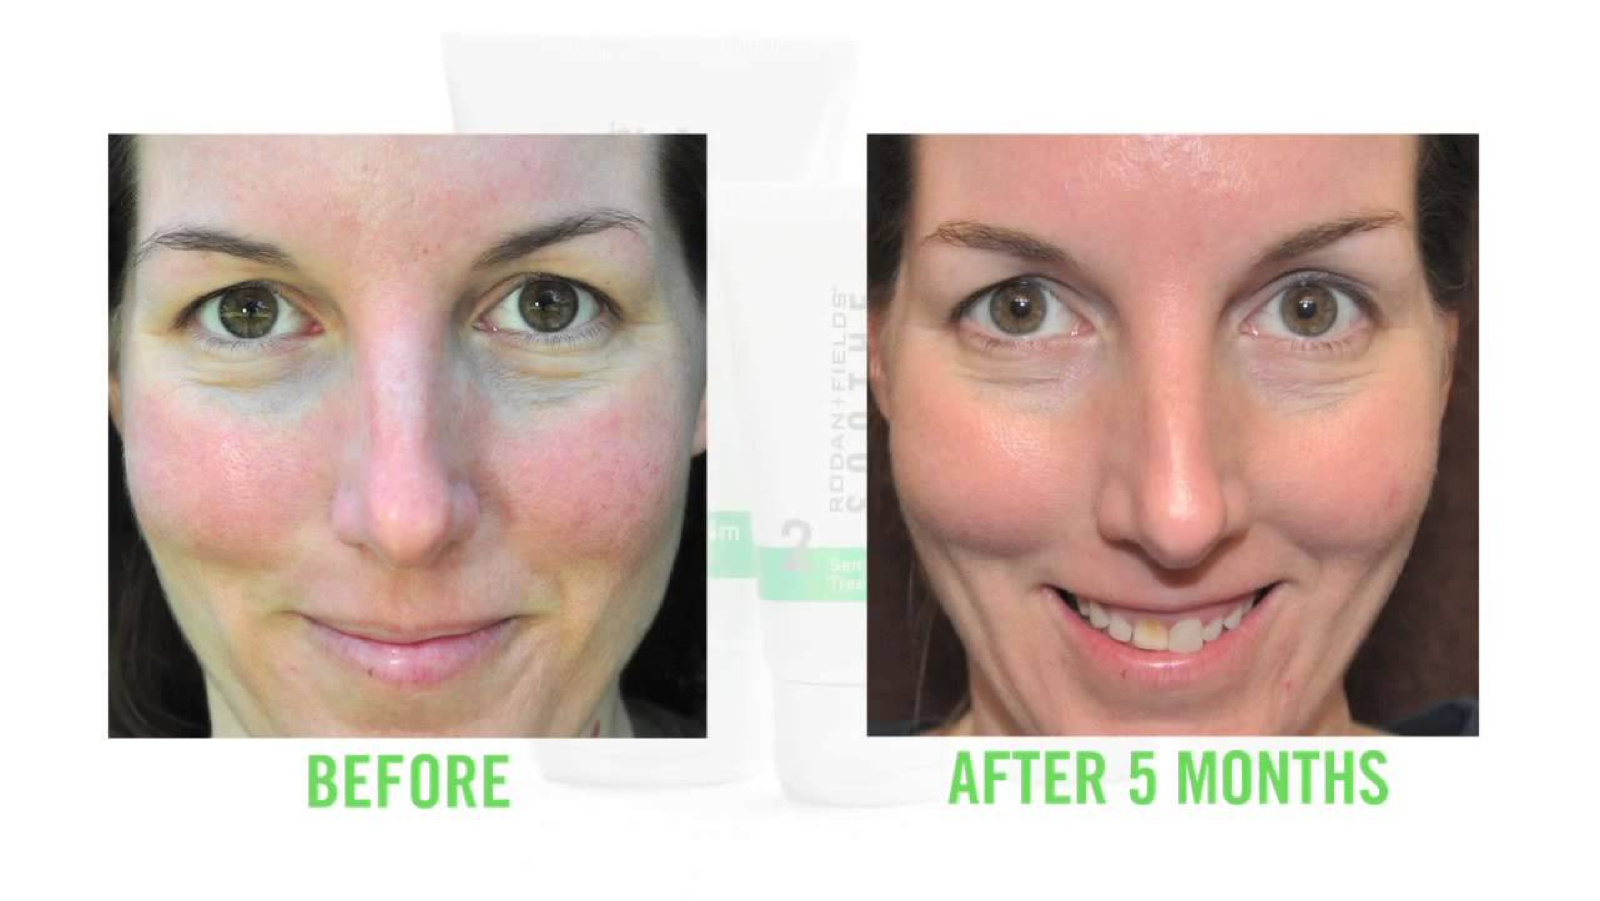 Soothe Line - Click here to try our redness and blotch correction line!